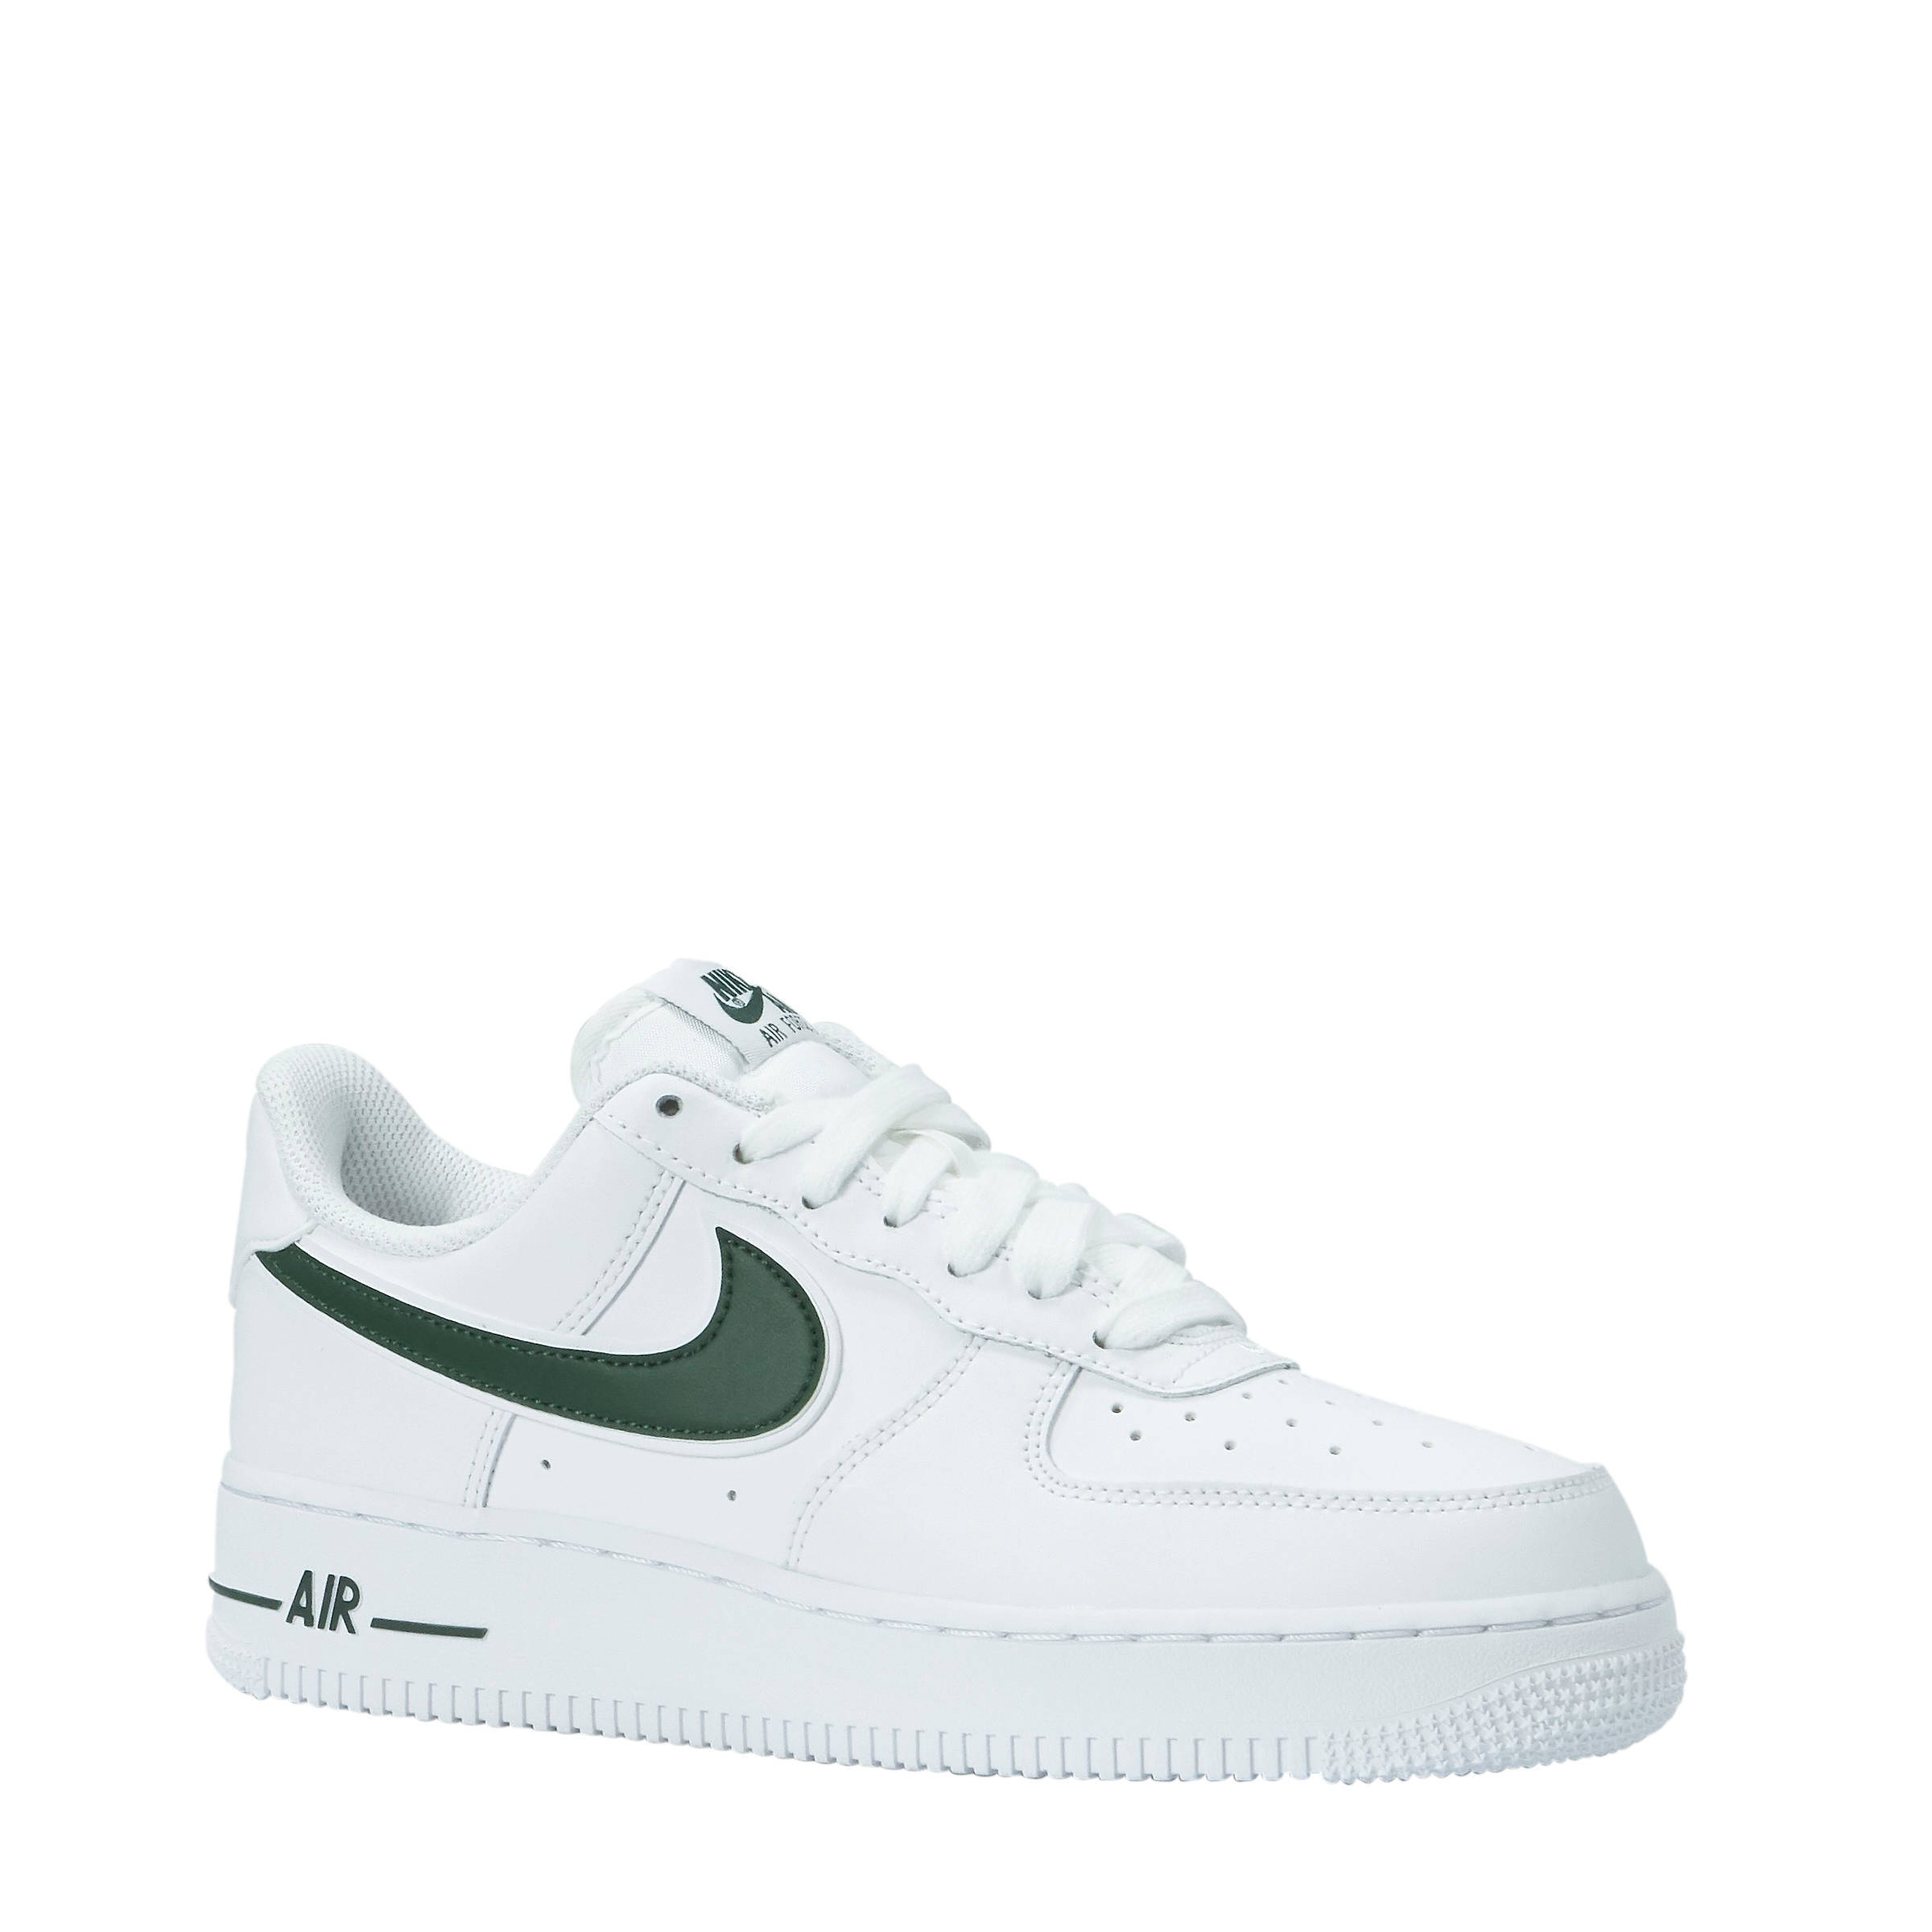 Nike Air Force 1 '07 3 sneakers leer wit/groen | wehkamp